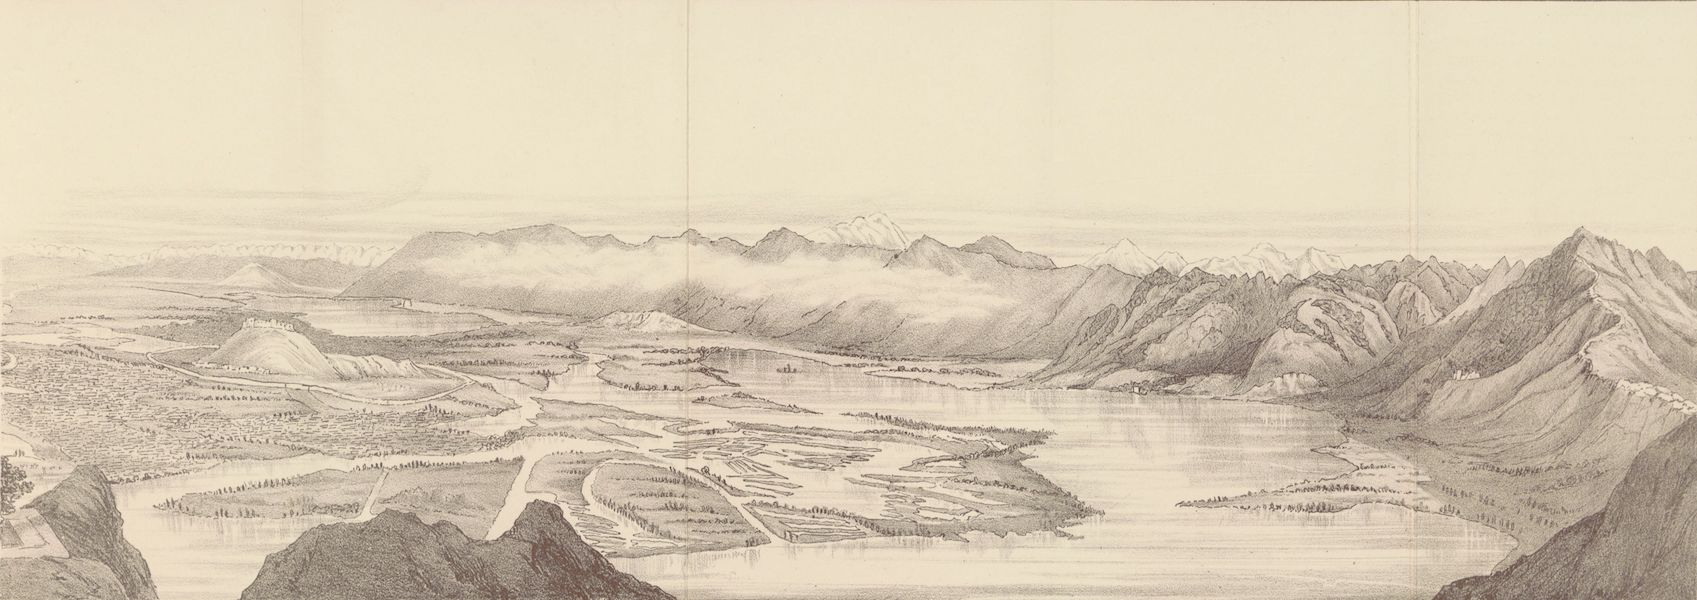 Journals Kept in Hyderabad, Kashmir, Sikkim, and Nepal Vol. 2 - Sketch of the Panorama from the Takht-i-Sulaiman (West-North-East) (1887)